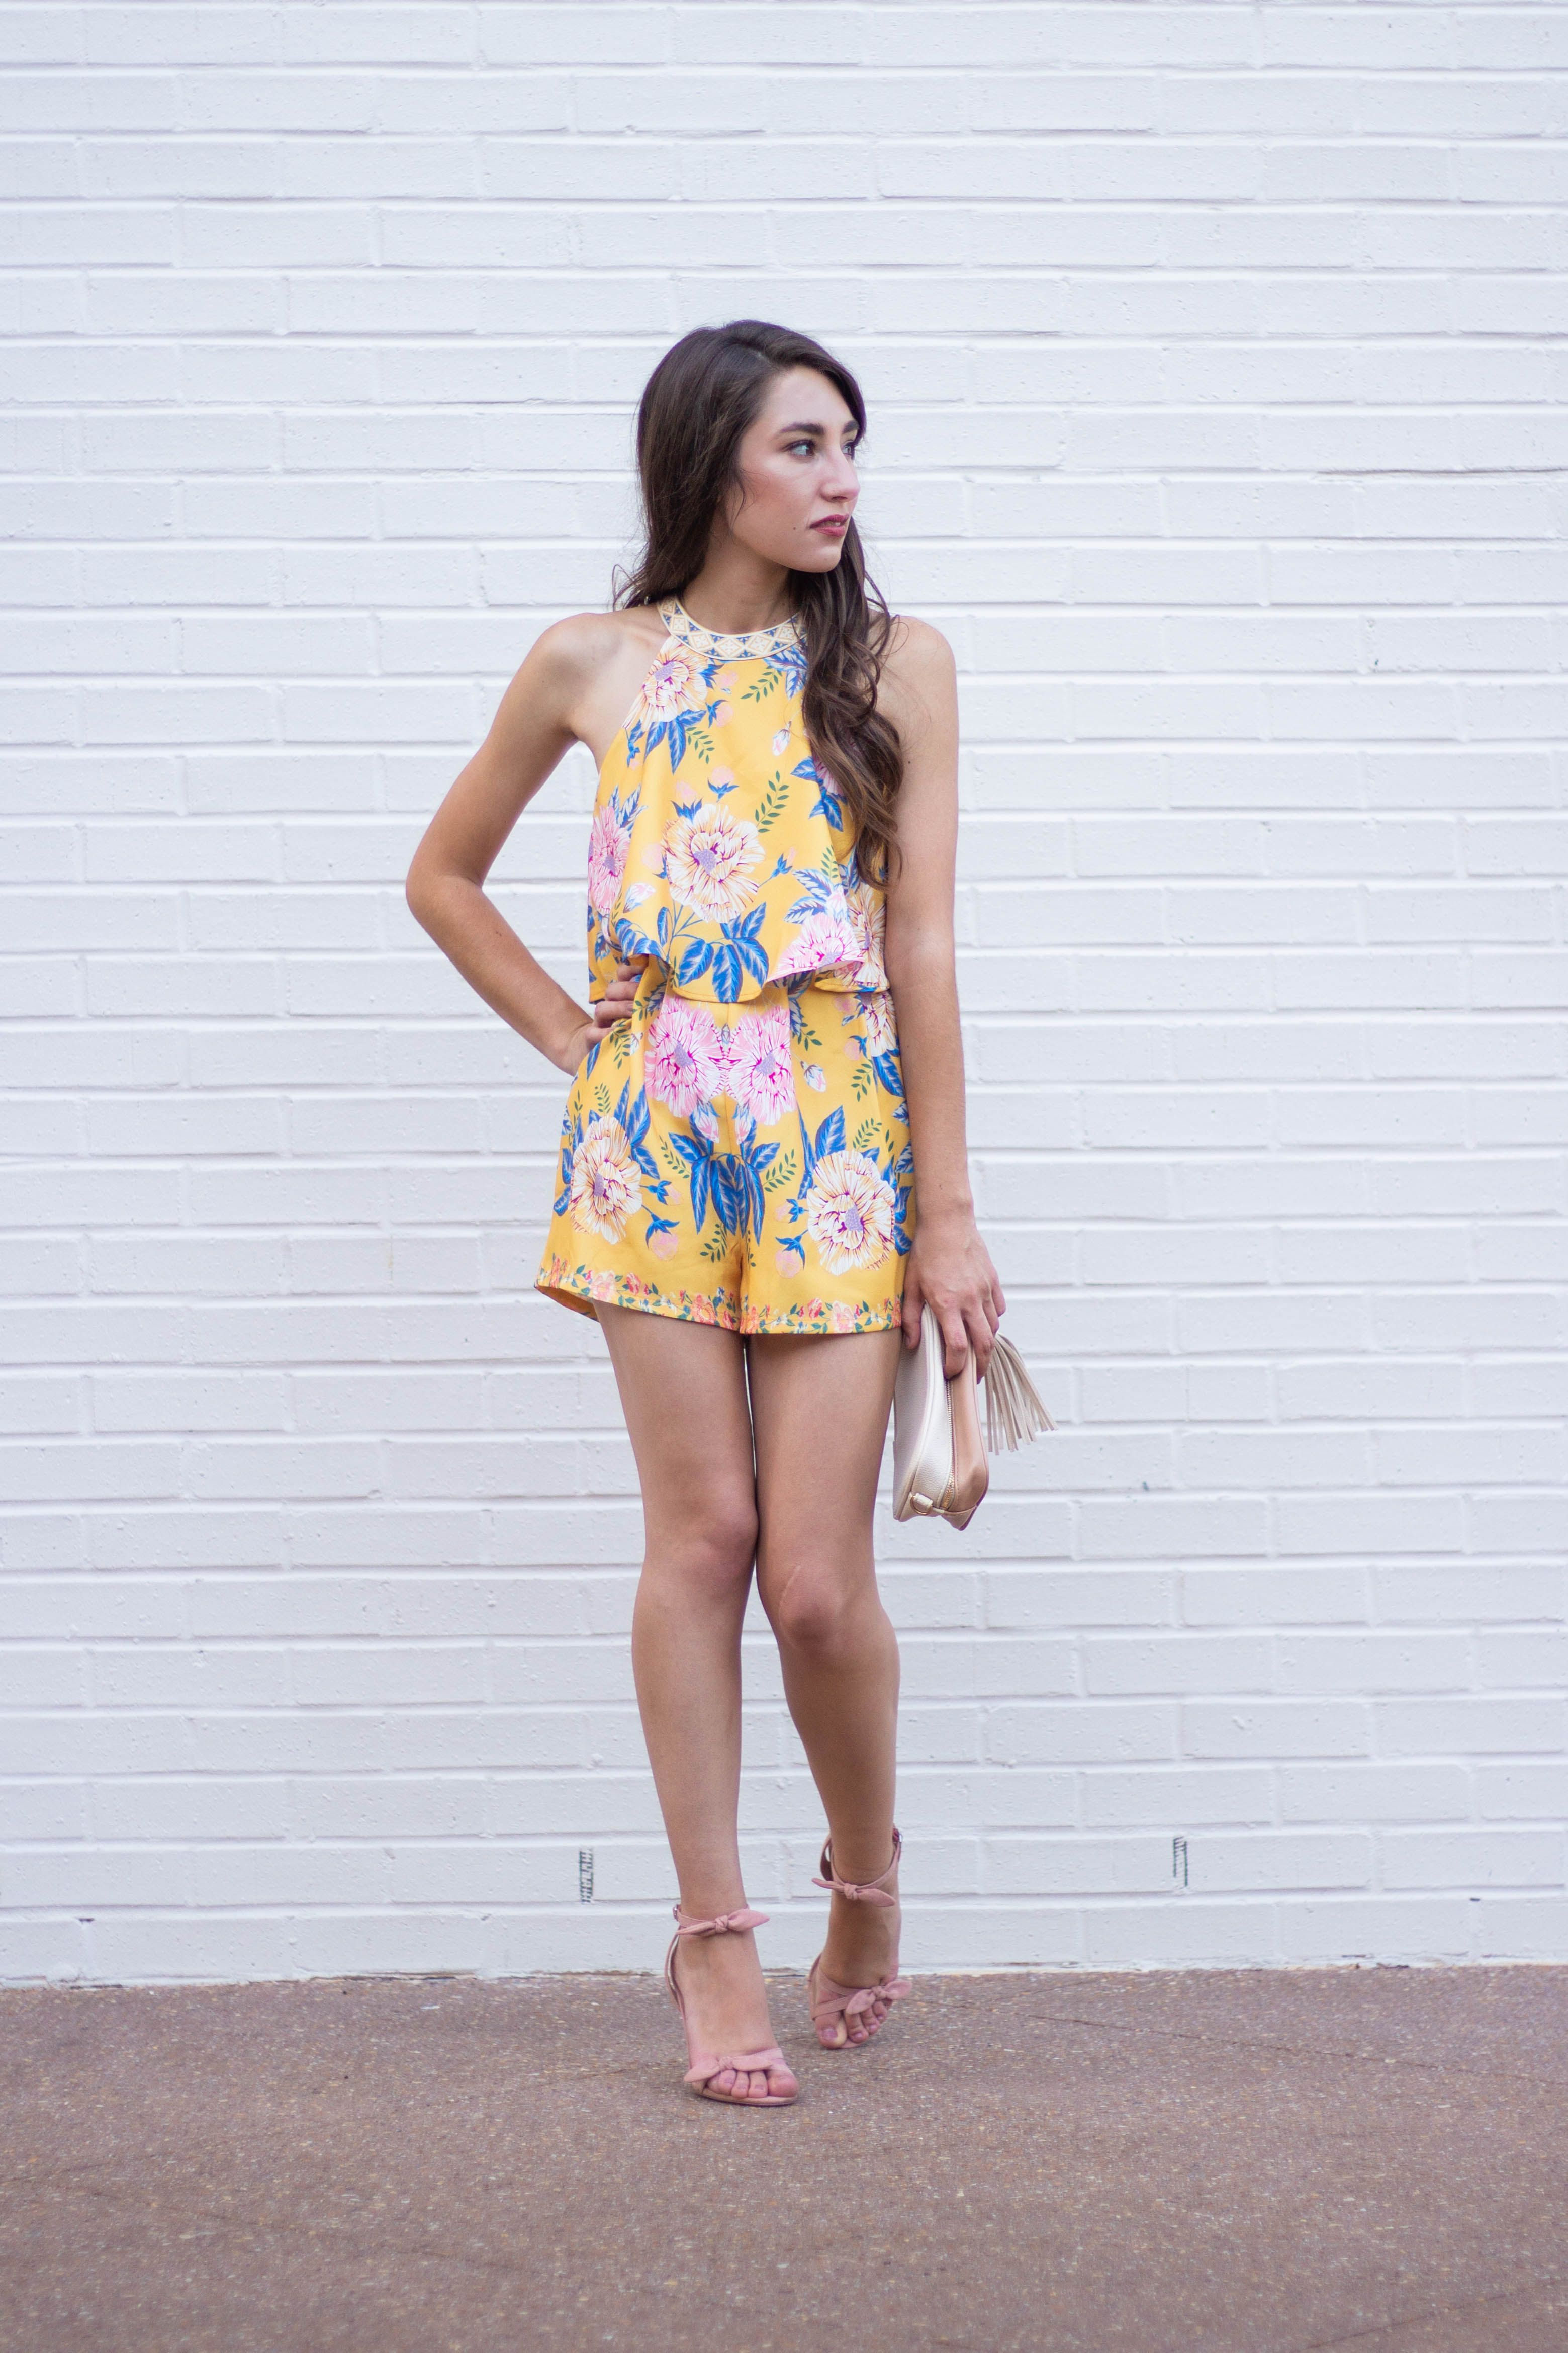 b7d988e67b9 Moo s Musing TBSCon Welcome Party francescas tie back romper Francescas  yellow romper  tbscon the blog societies conference blogging tips and  tricks 10 ...